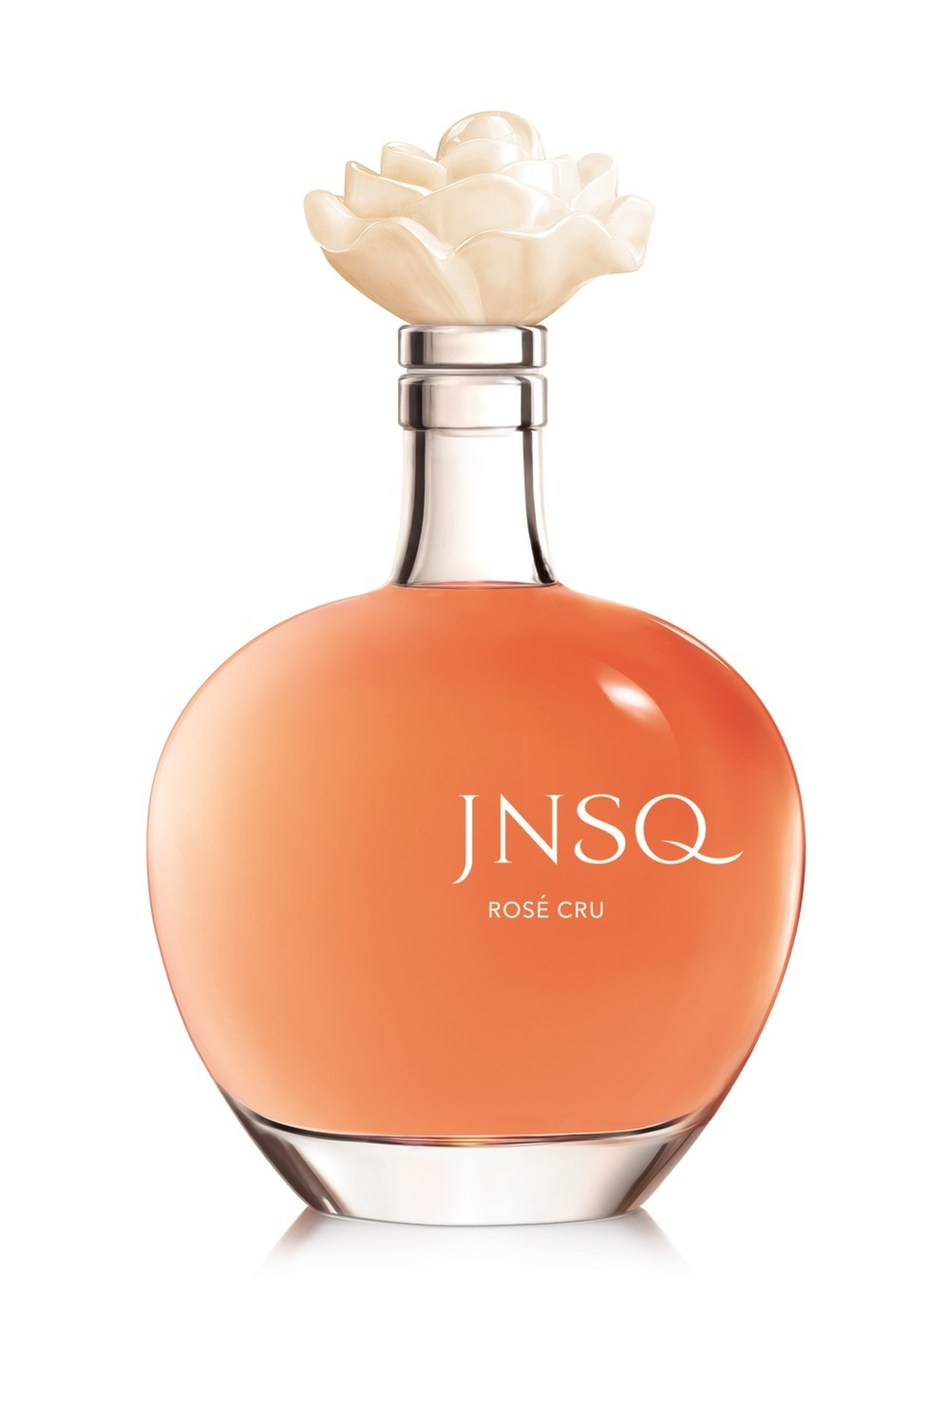 JNSQ Rosé Cru, a California wine with a French Accent Launches Nationwide